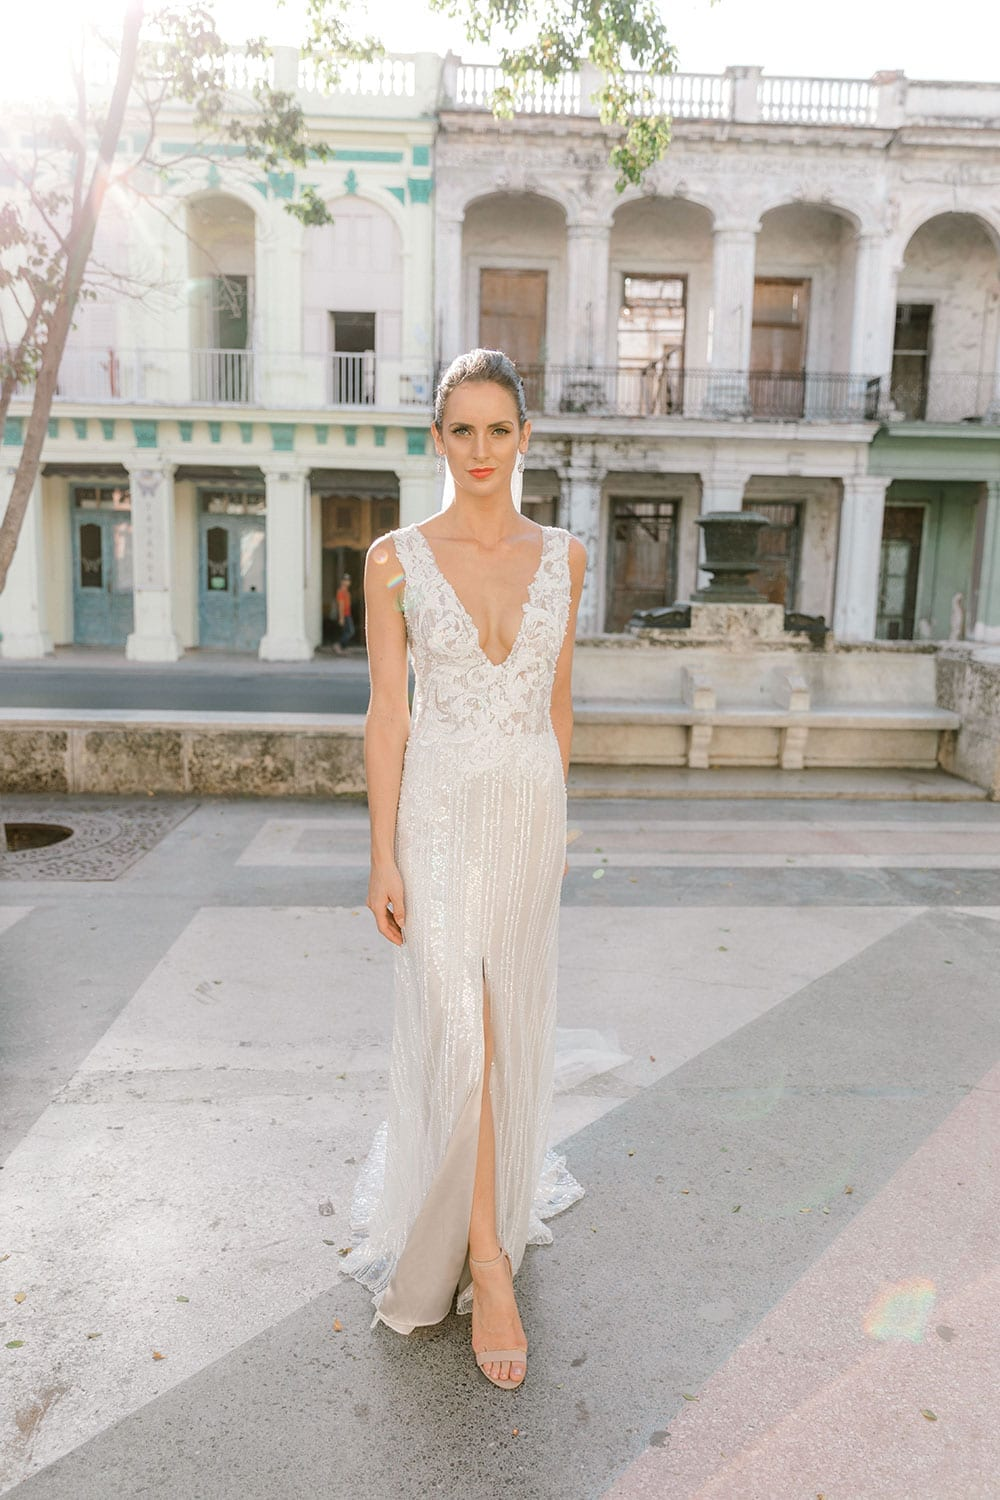 Model wearing Vinka Design Natalia Wedding Dress, a V-Neck Beaded Lace Wedding Gown face on with leg showing split in front of an old building with archways in Cuba